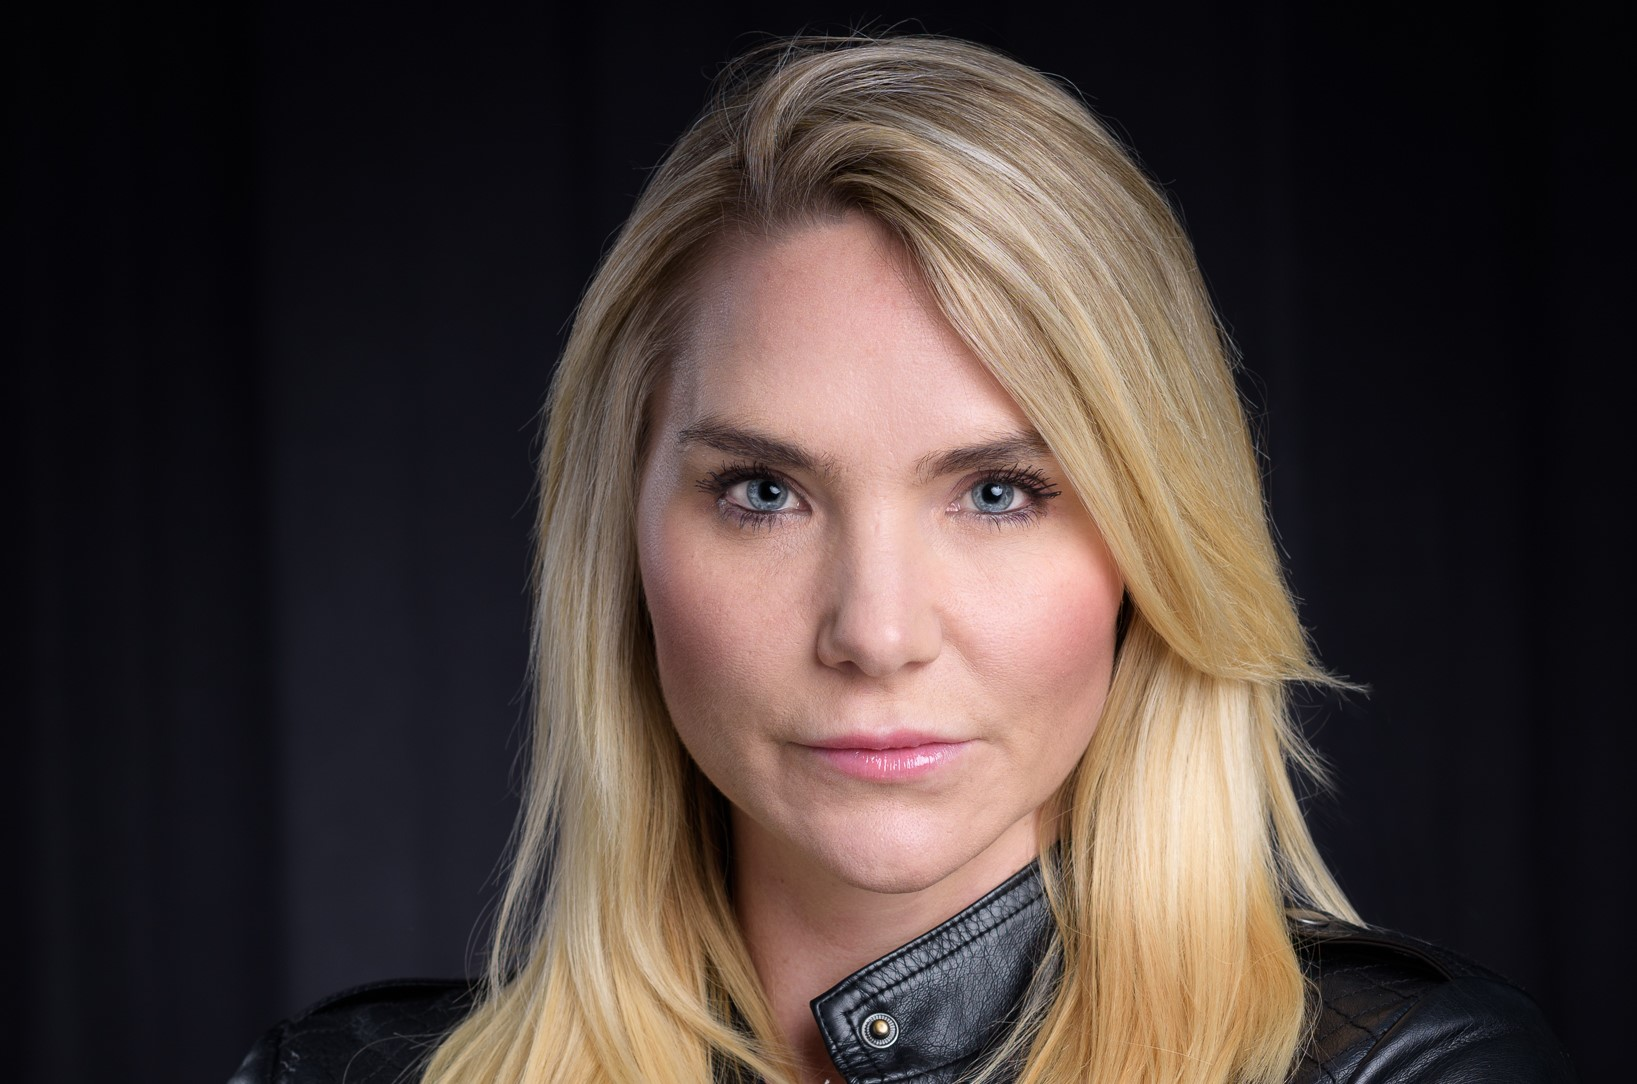 INTERVIEW WITH ACTOR JENNY BERG